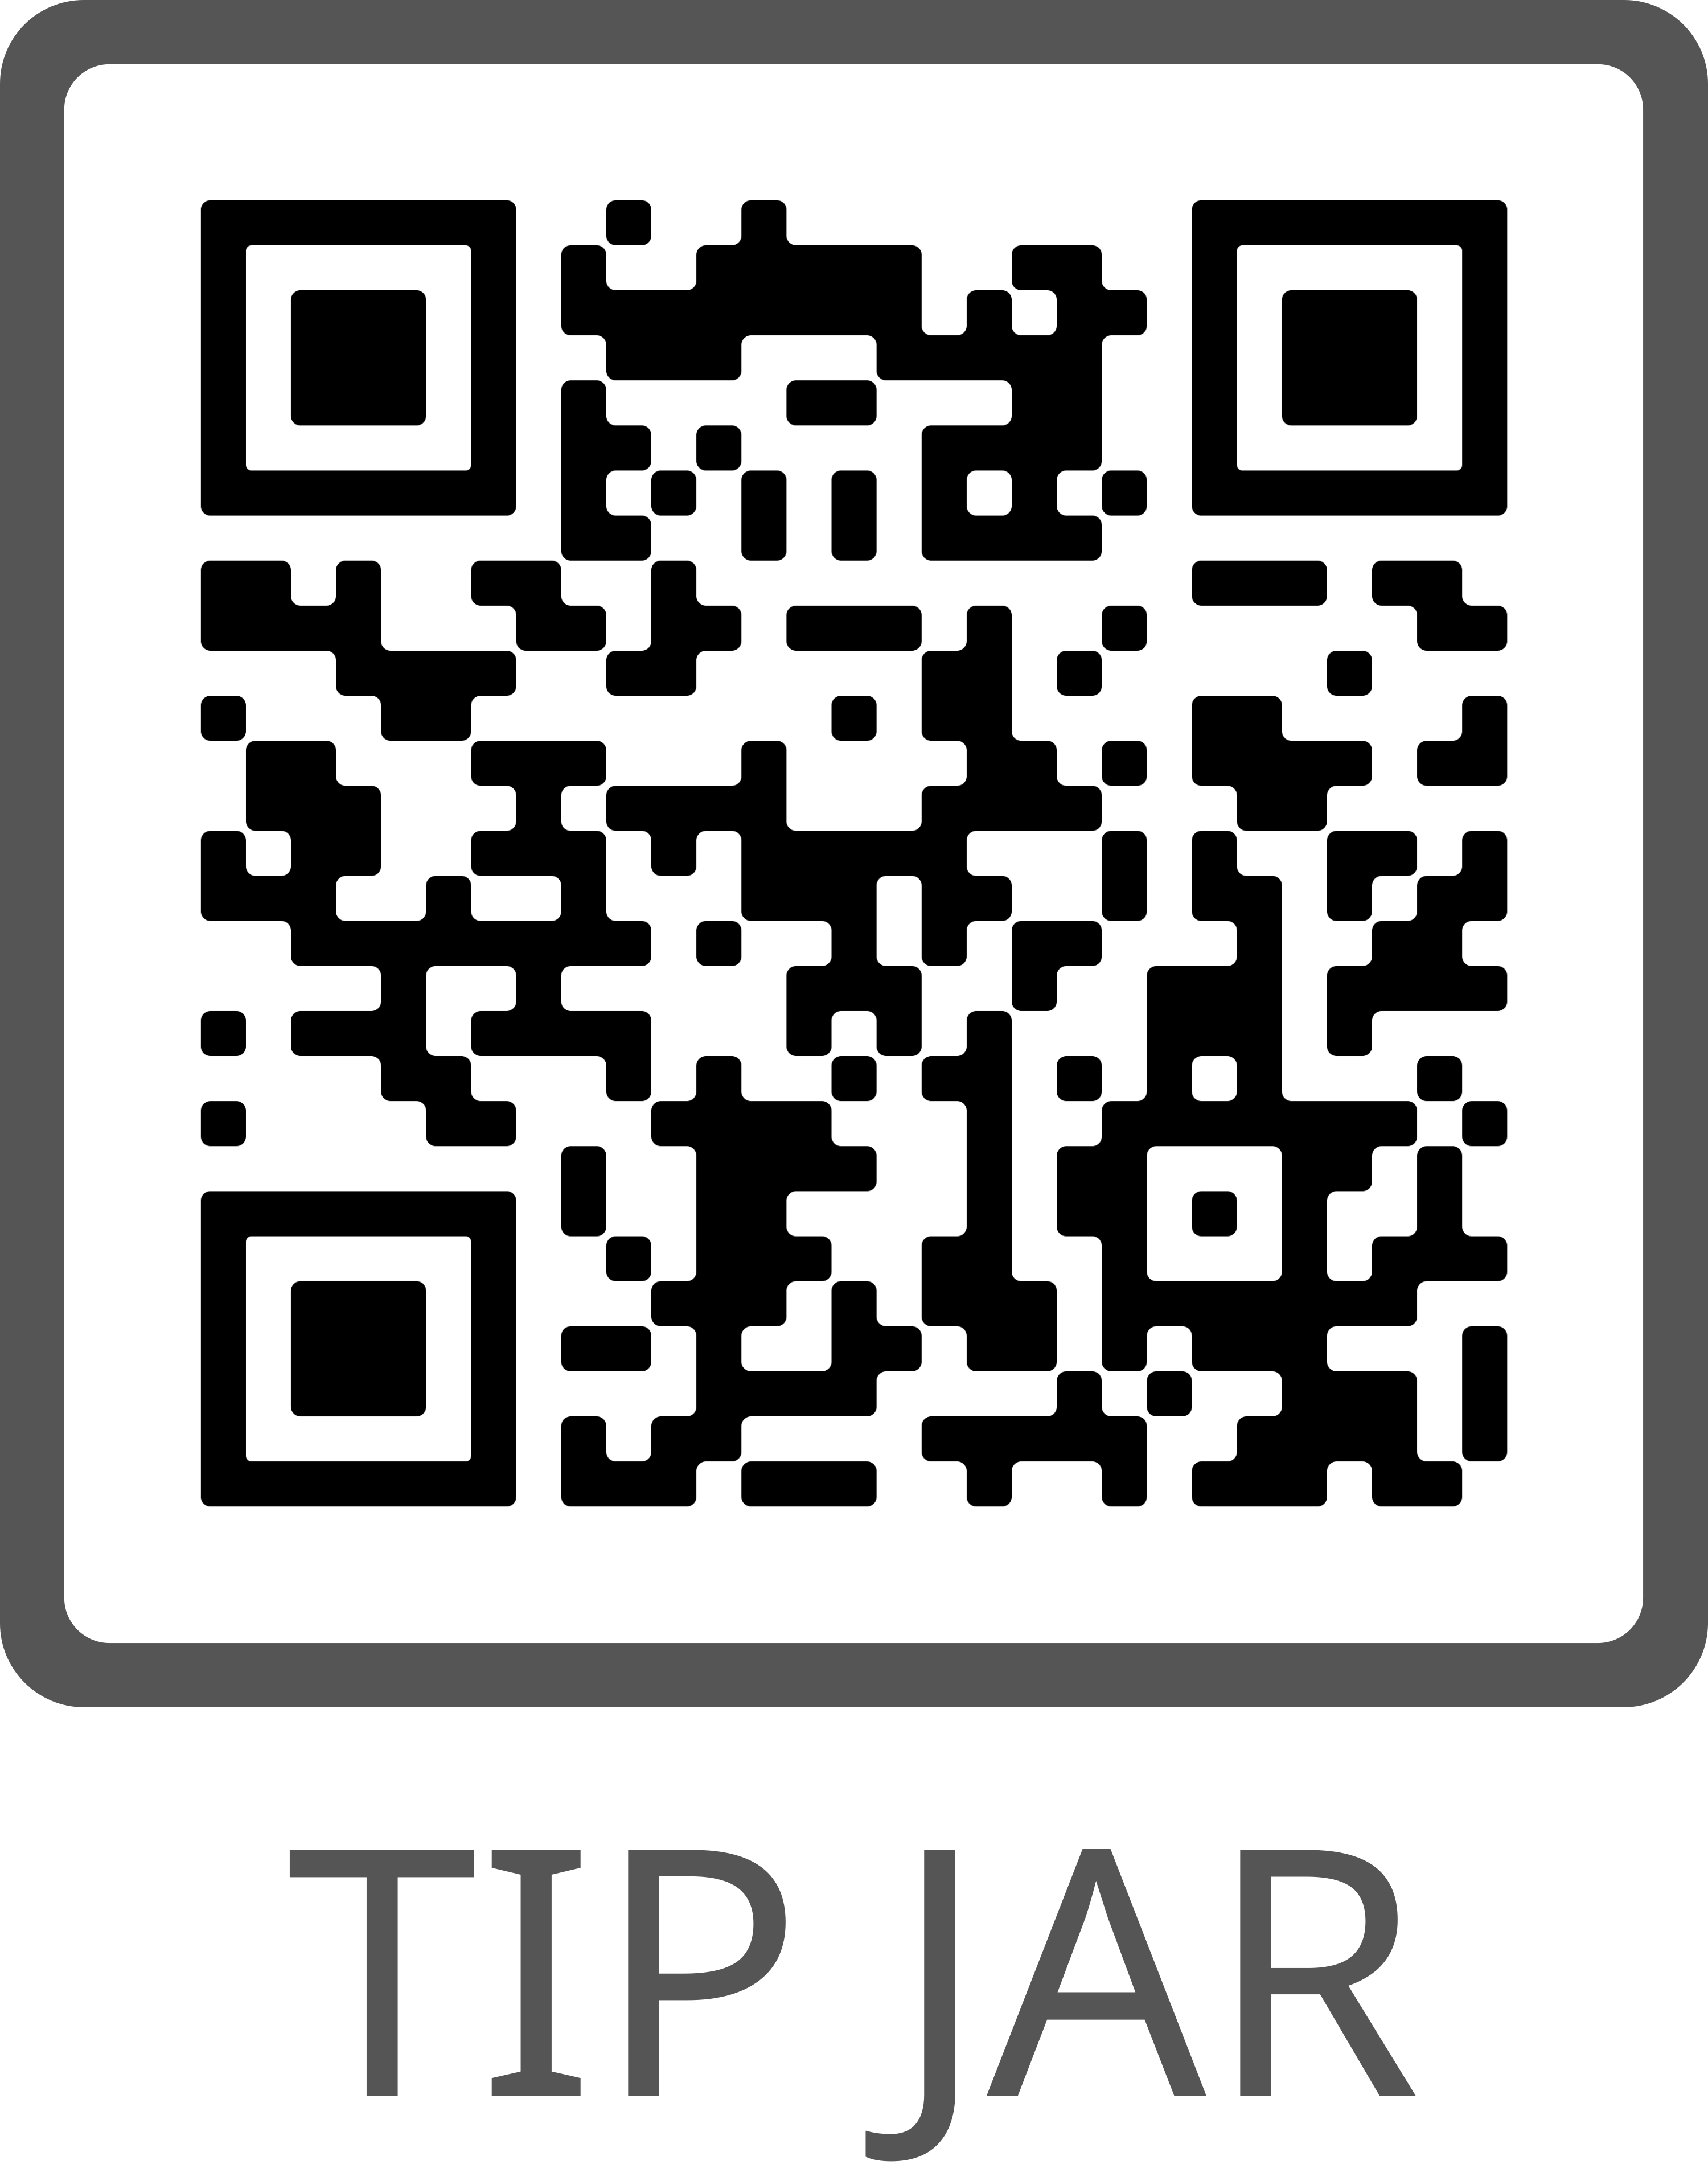 QR Code linking to a CRO address for providing tips